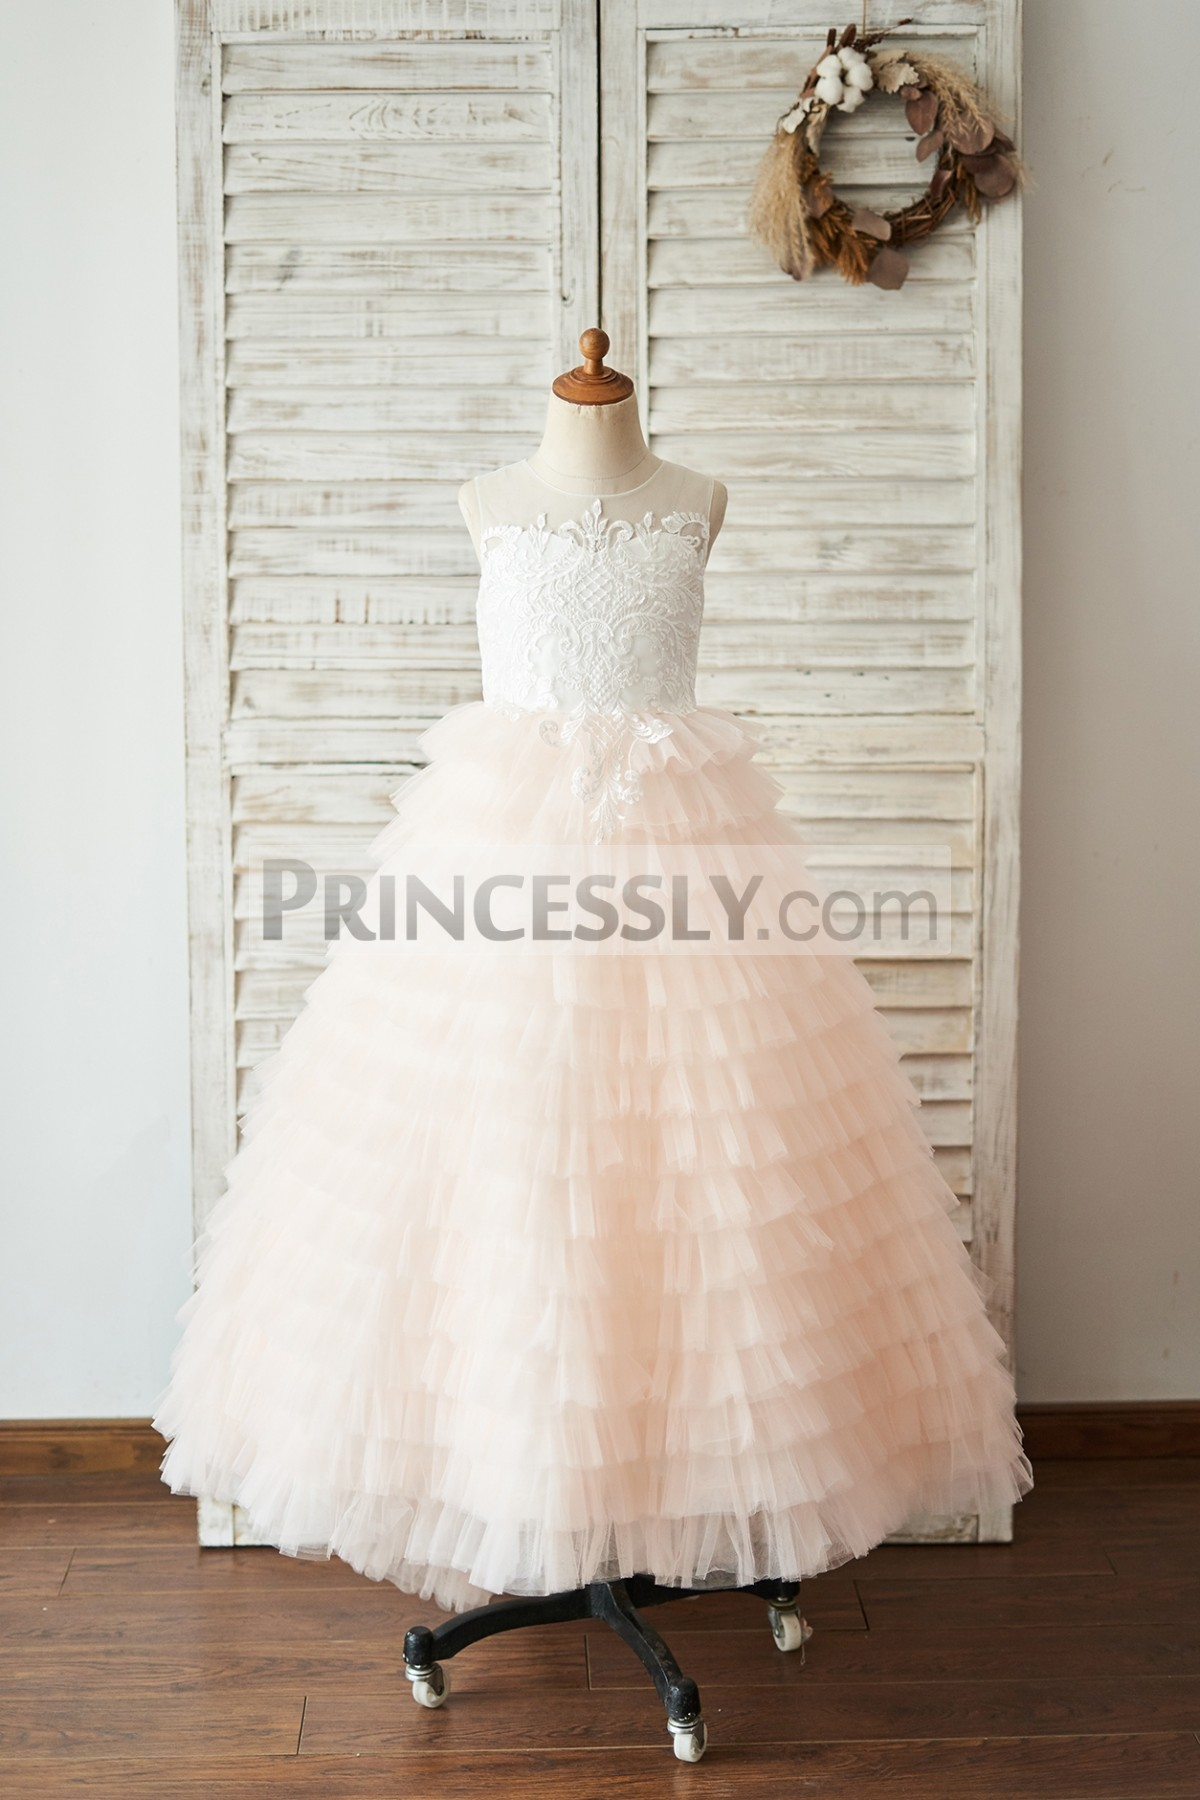 Princessly.com-K1004048-Ivory Lace Peach Pink Cupcake Tulle Keyhole Back Wedding Flower Girl Dress-31